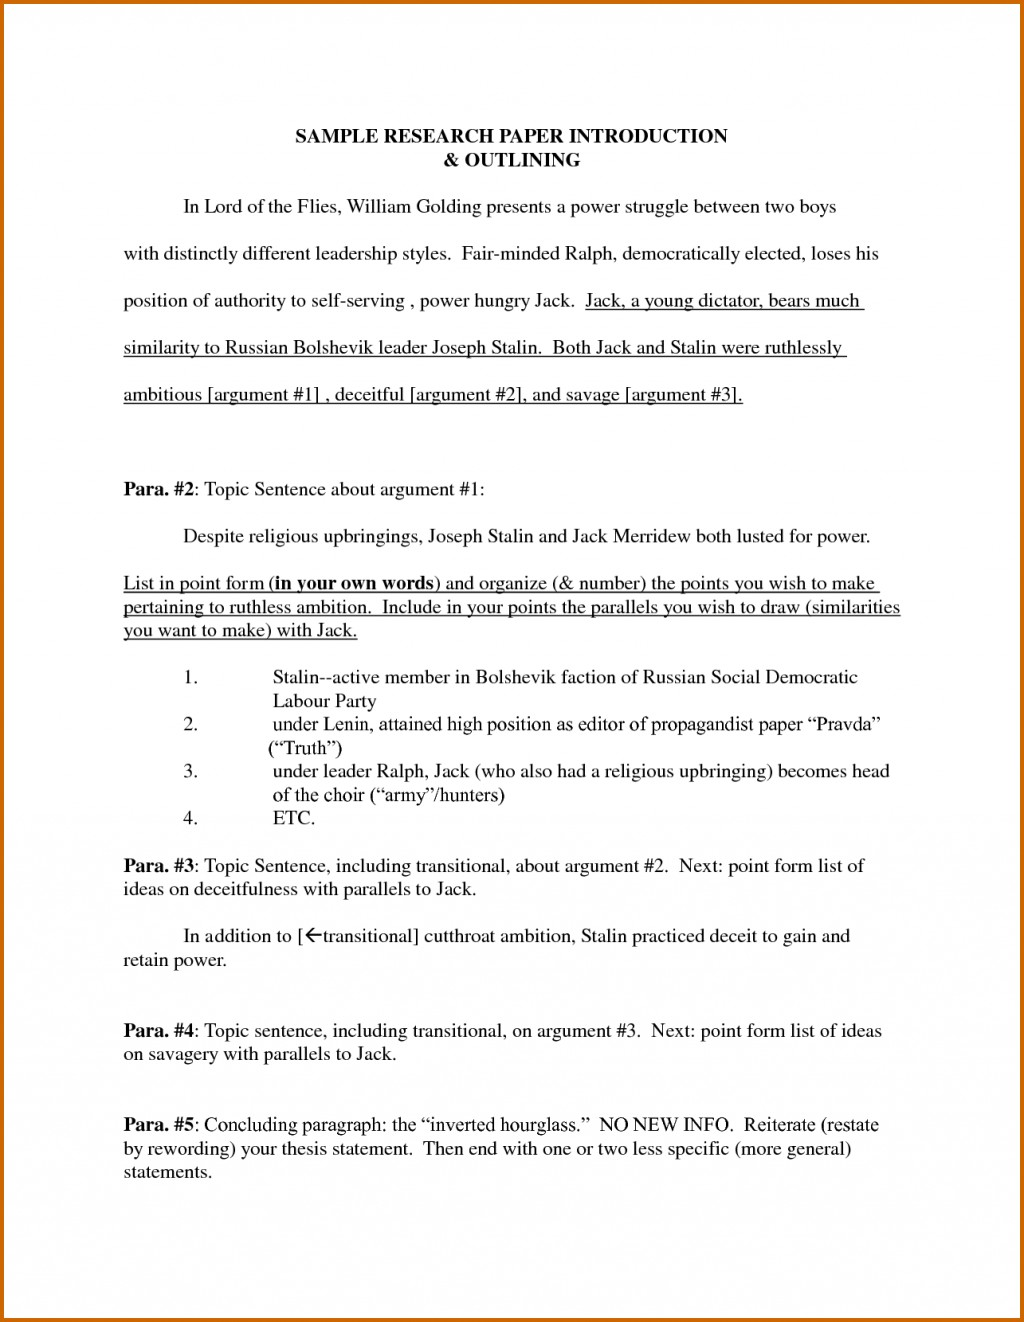 005 Research Paper Introduction For Term Sample How To End Magnificent A Large